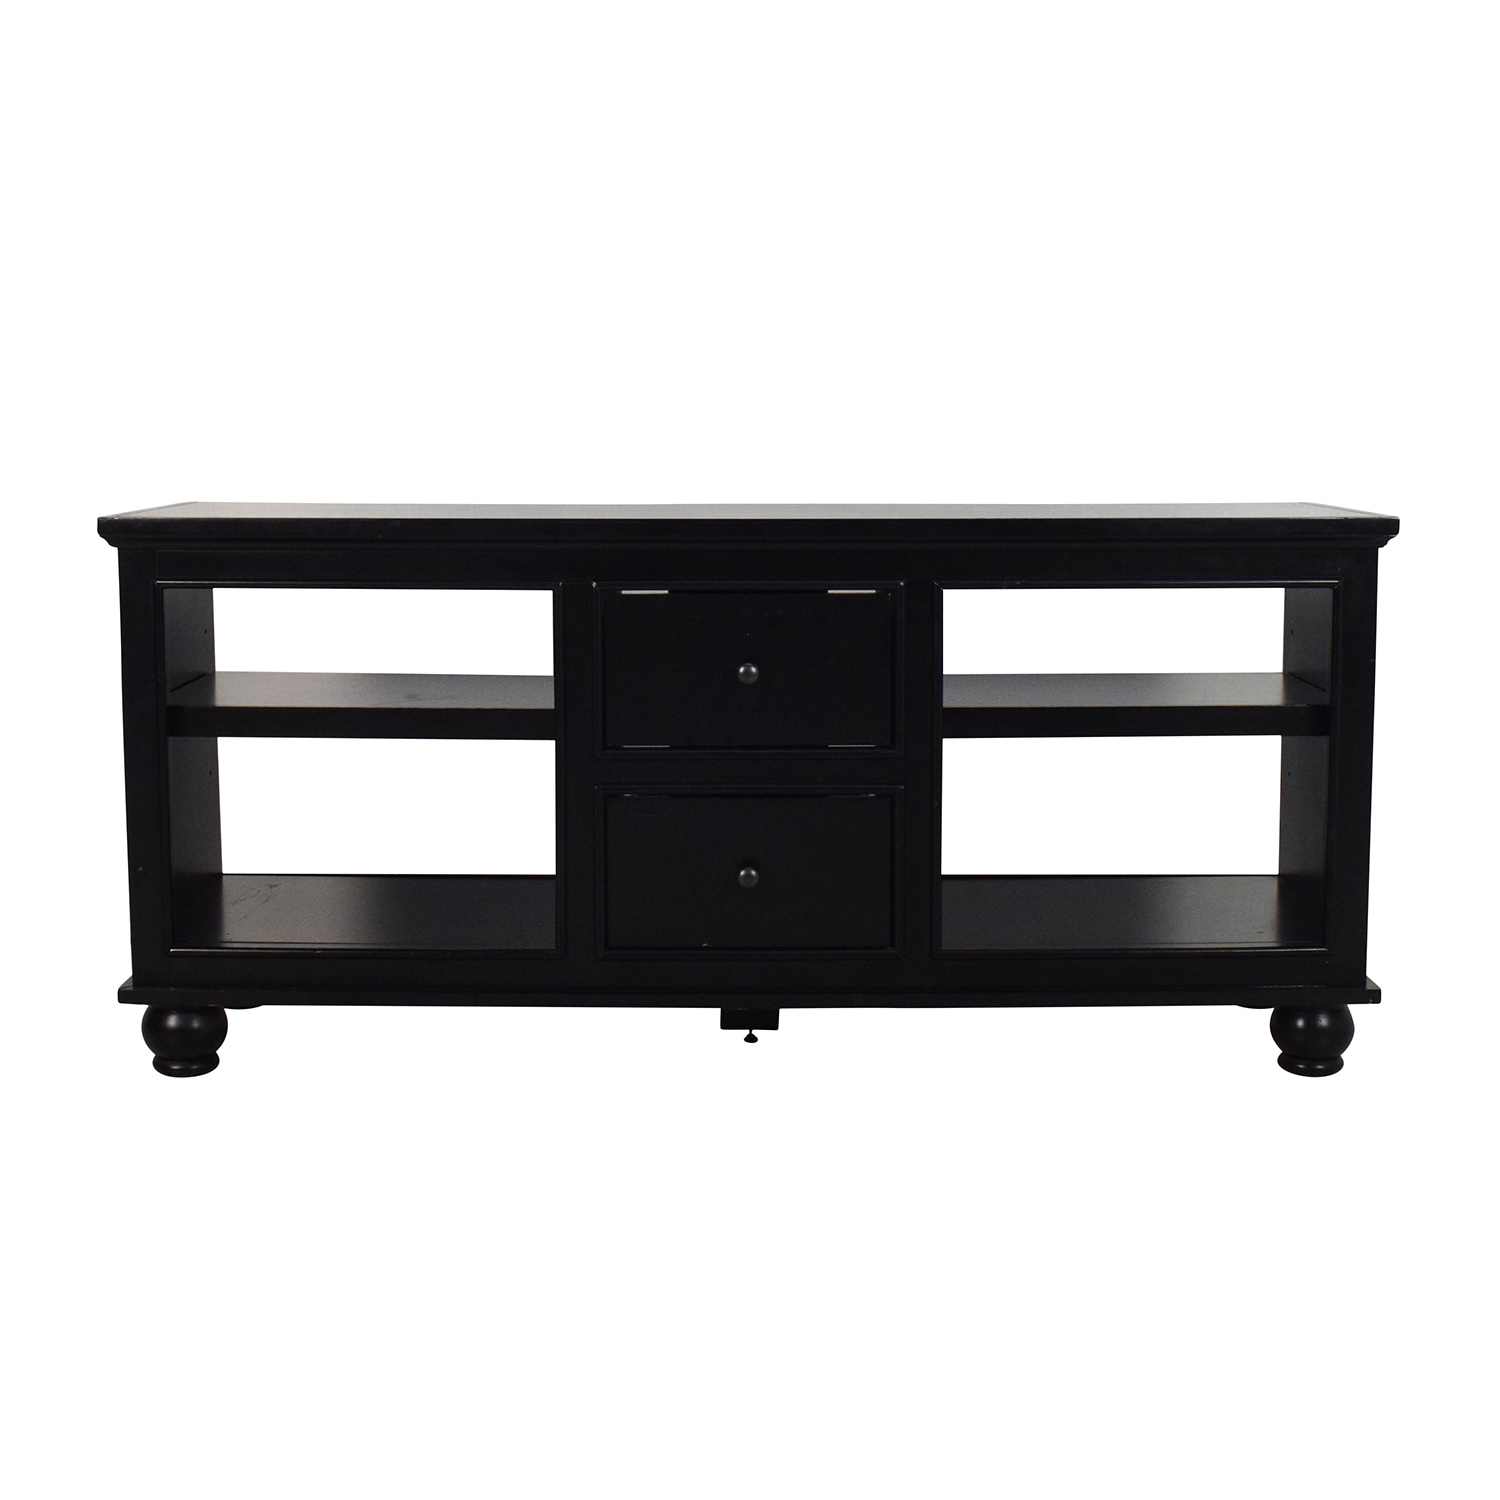 Black Wooden Media Stand with 2 Drawers used